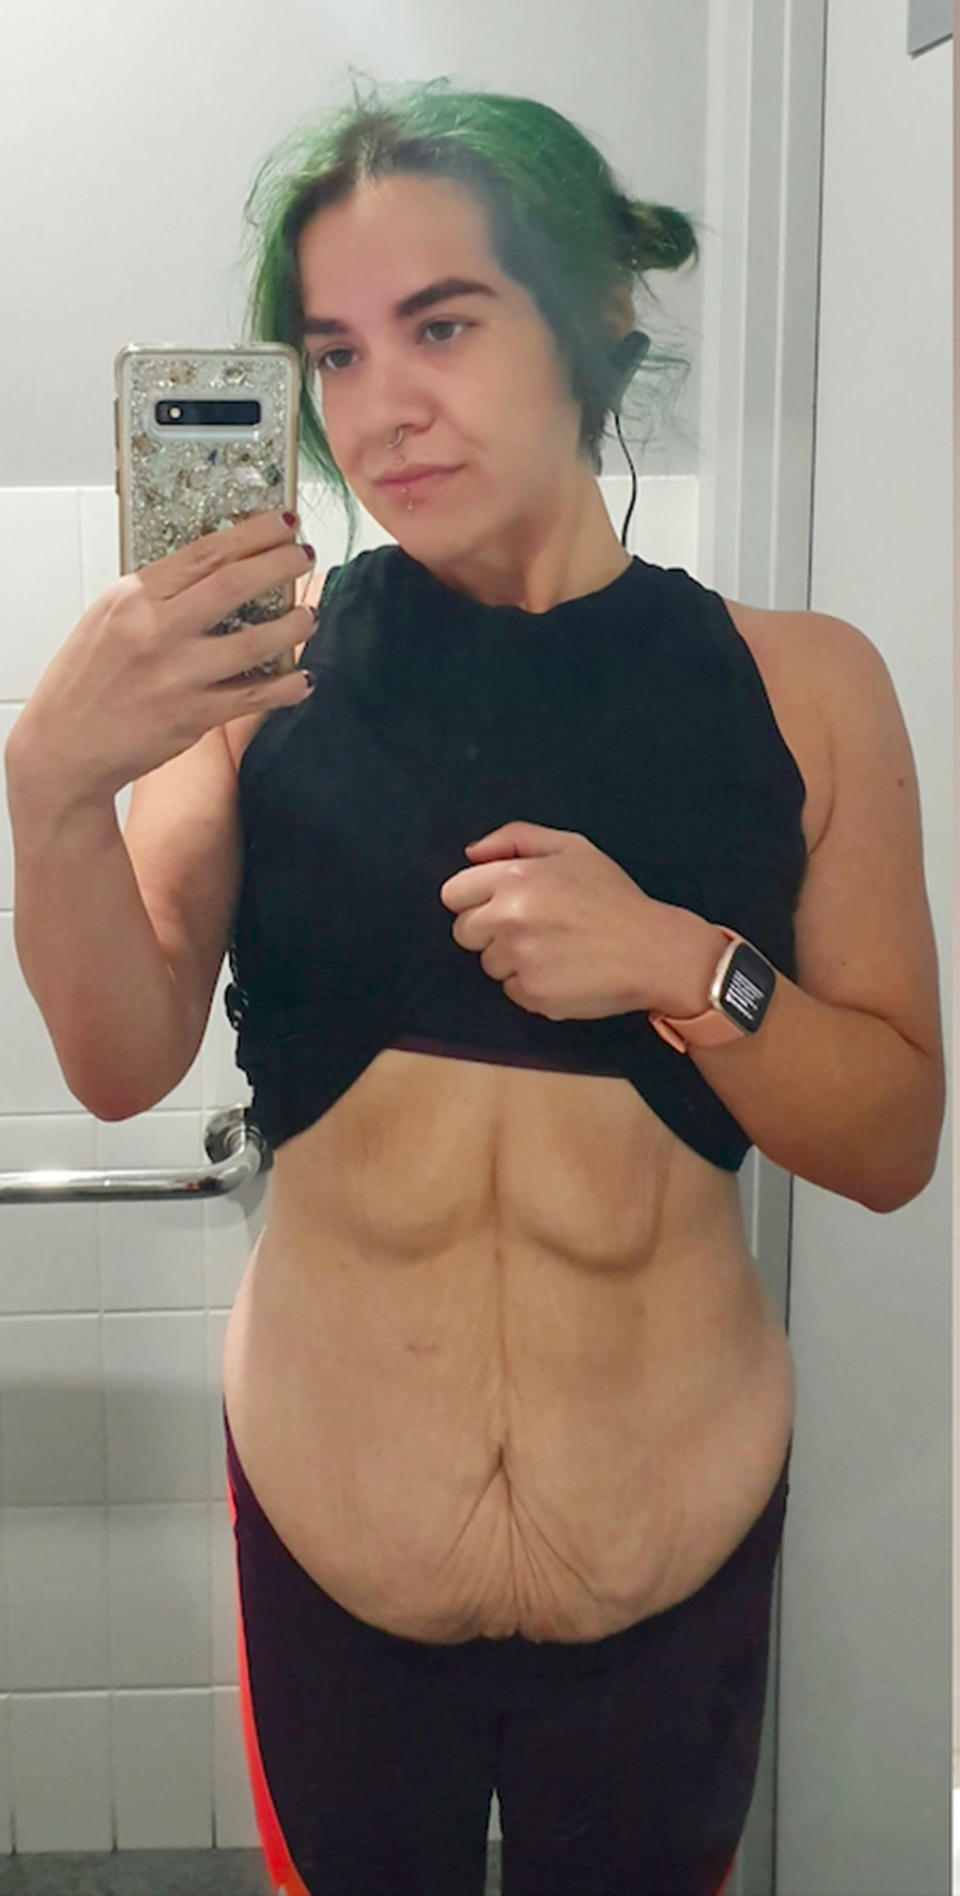 After losing 68kg, Michelle had a lot of loose skin around her stomach and in October 2019, she decided to have an abdominoplasty to get rid of it. Photo: Caters News